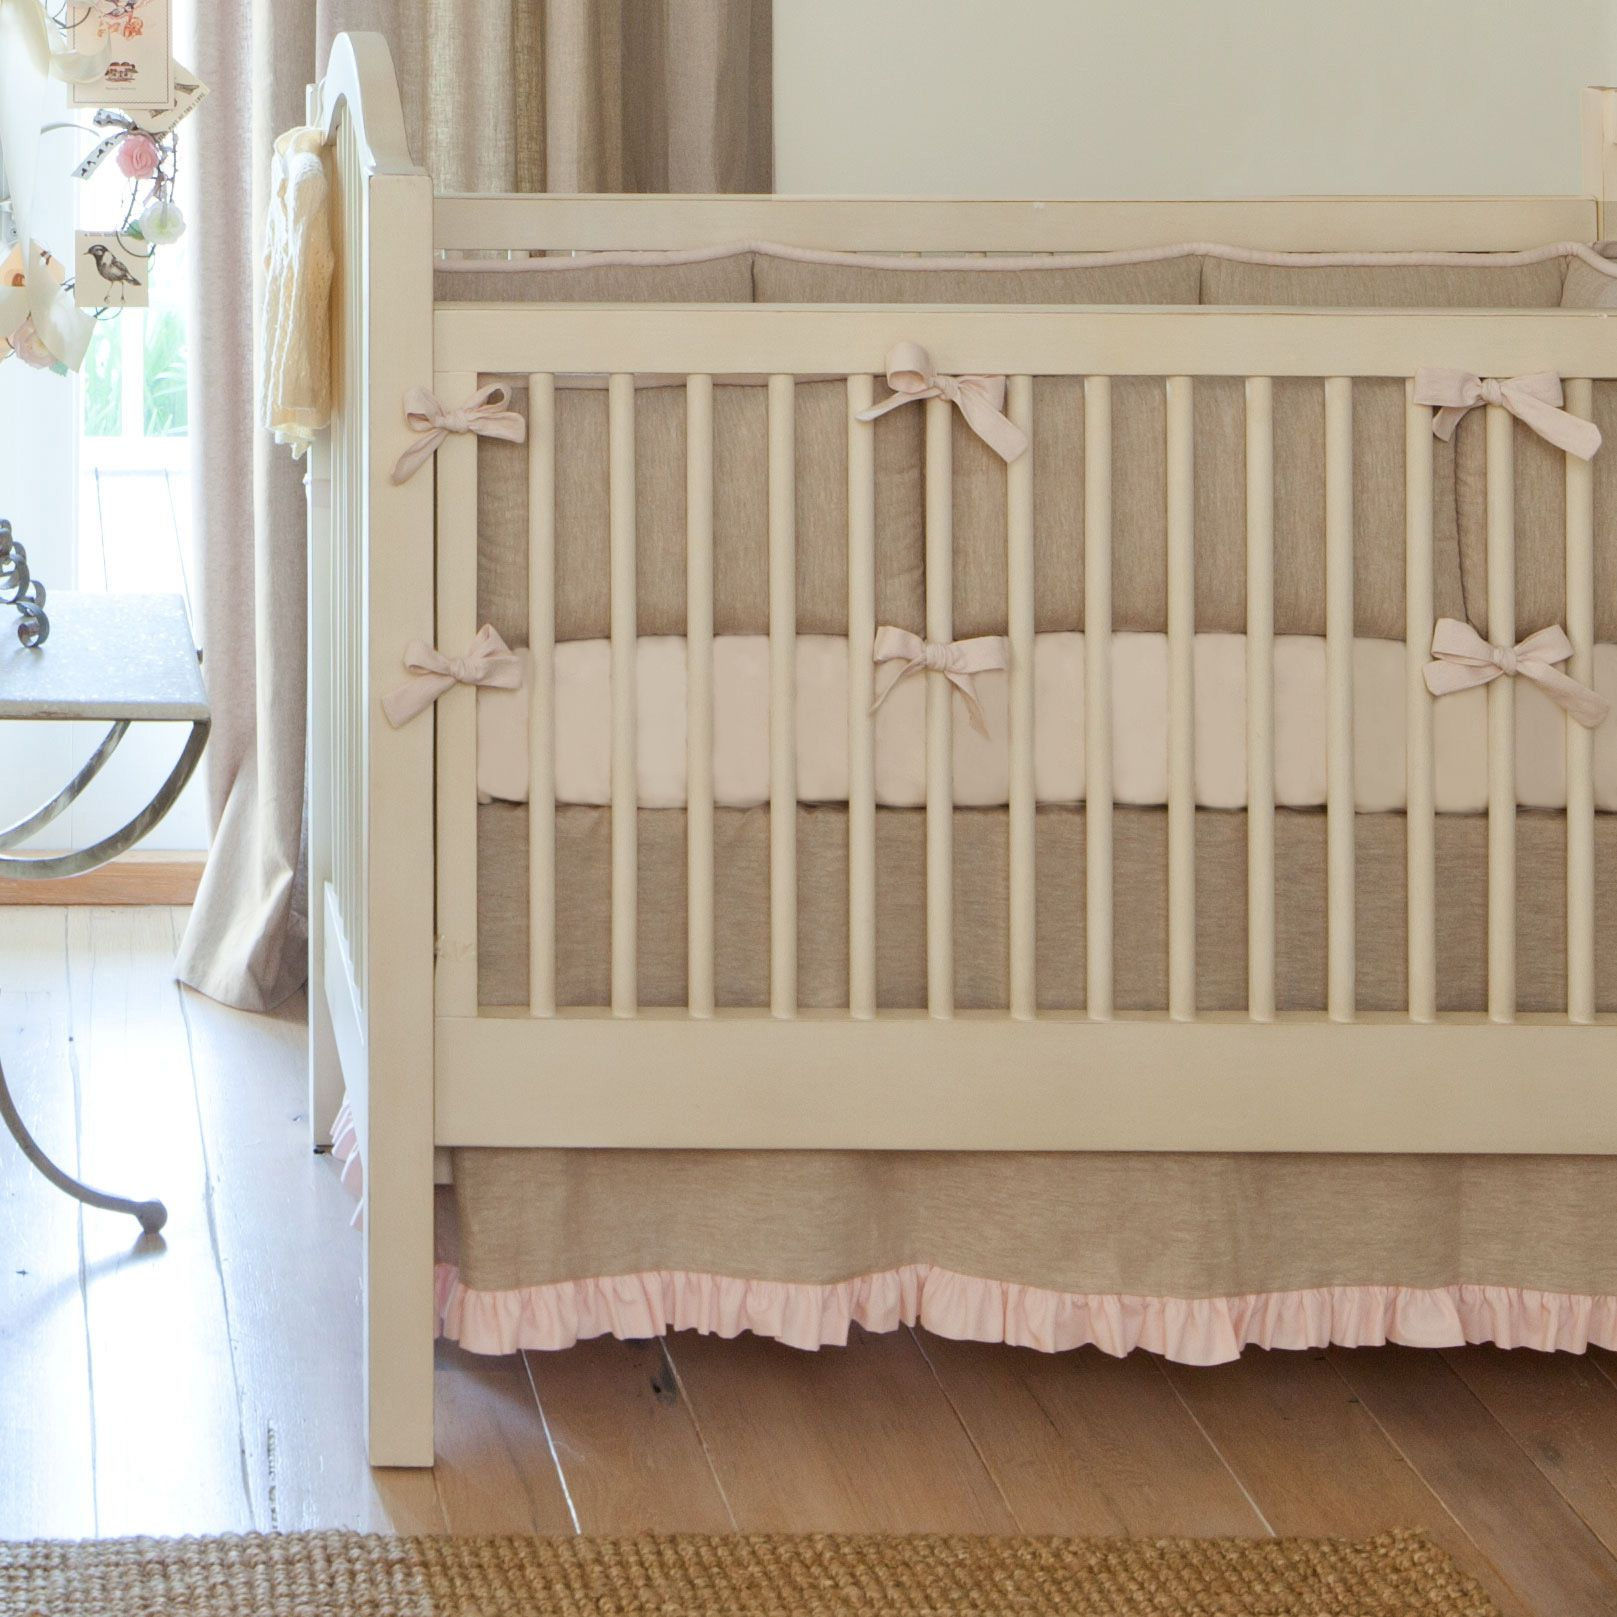 owl for cheap buy bedding sets picture important baby the girl crib woodland to cot nautical cribs boy skirt comforter nursery gallery considerations